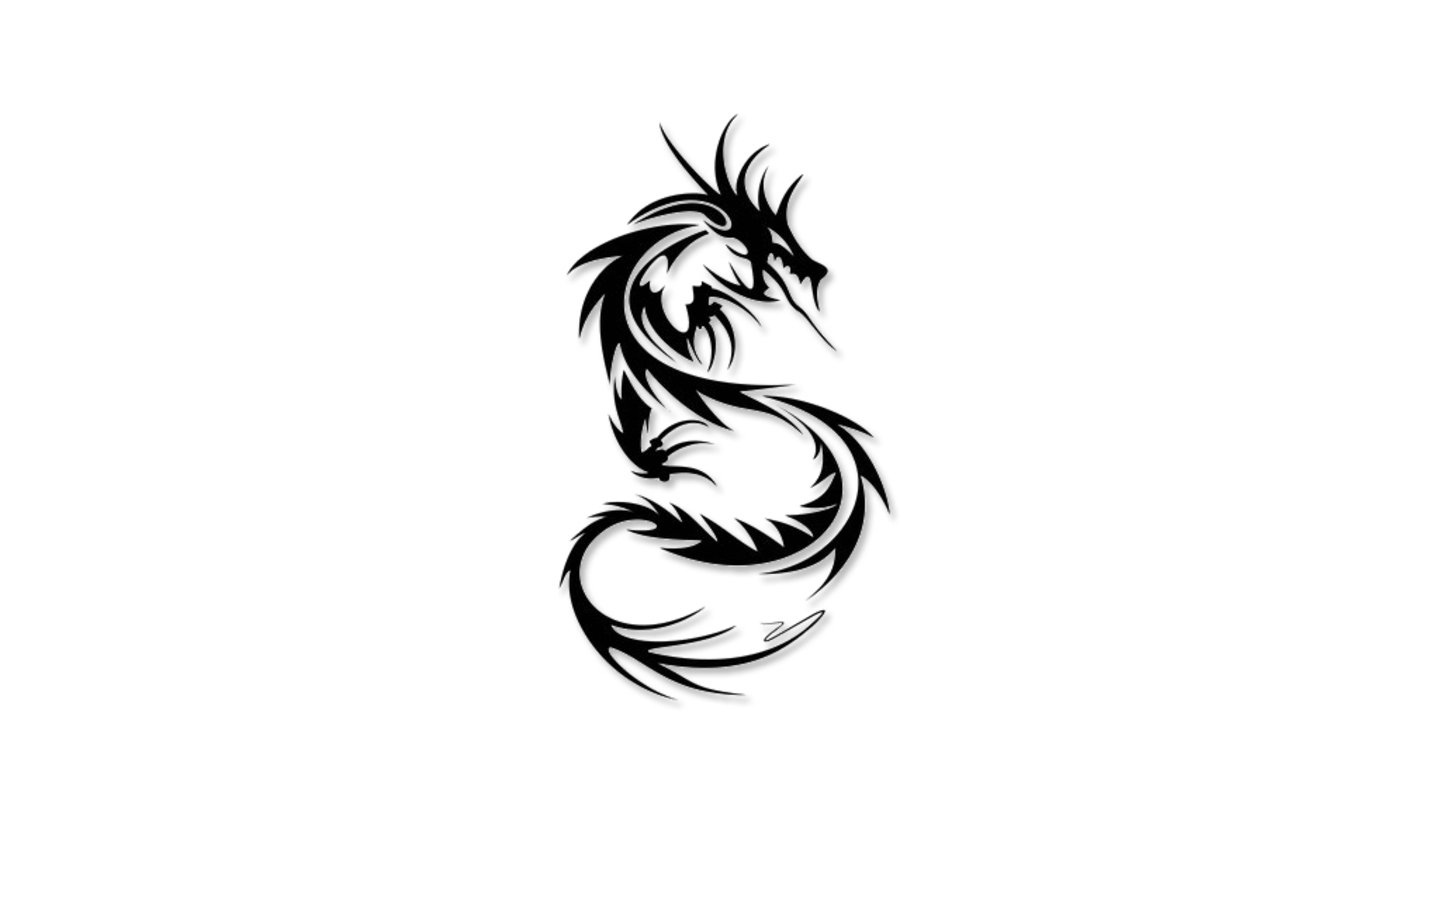 Image Dragon Symbol Jpeg Wings Of Fire Fanon Tribes